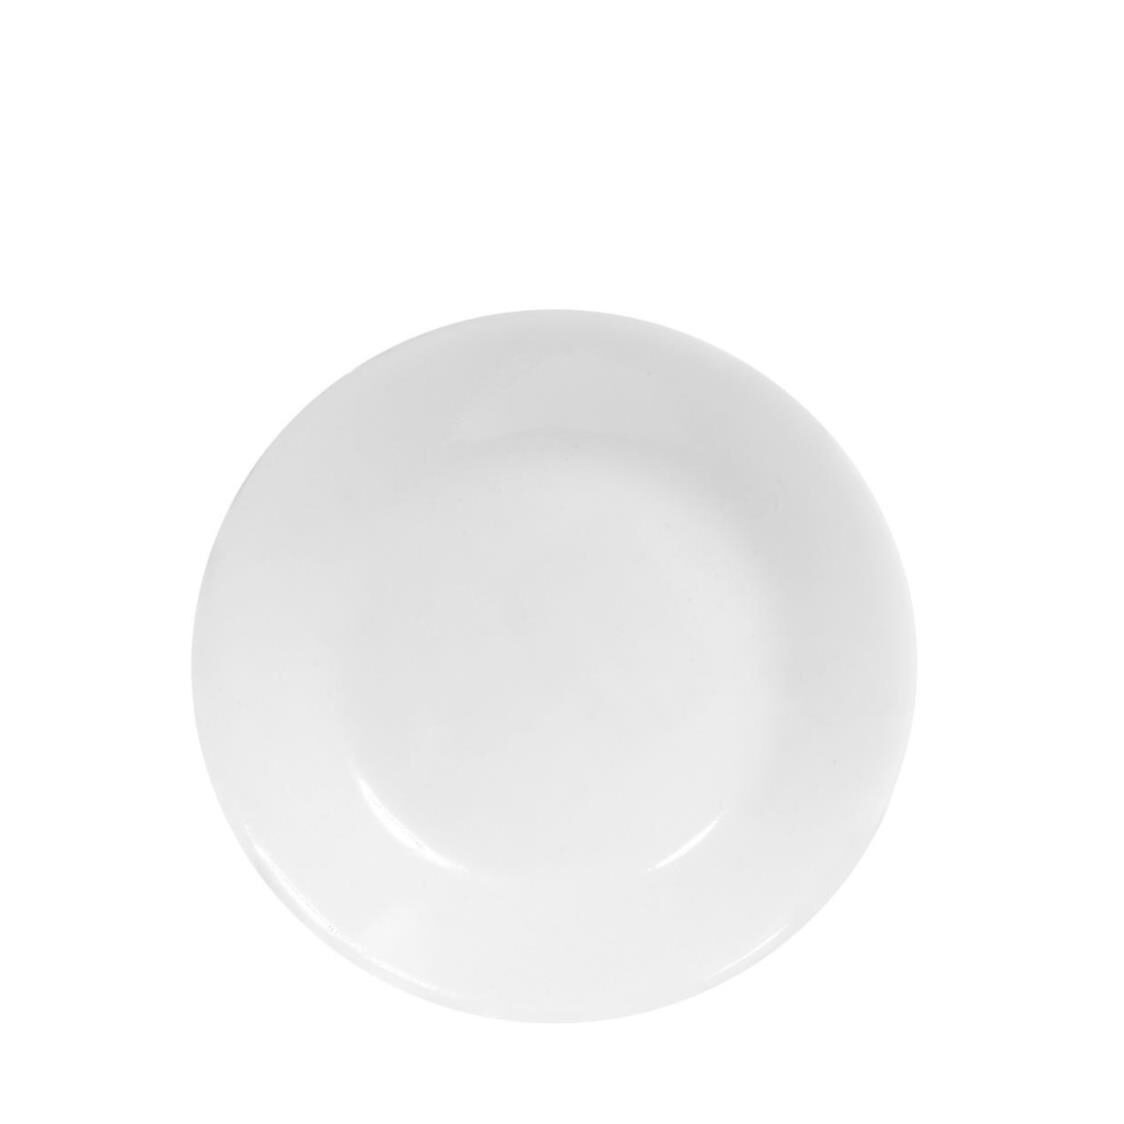 BreadButter Plate Winter Frost White